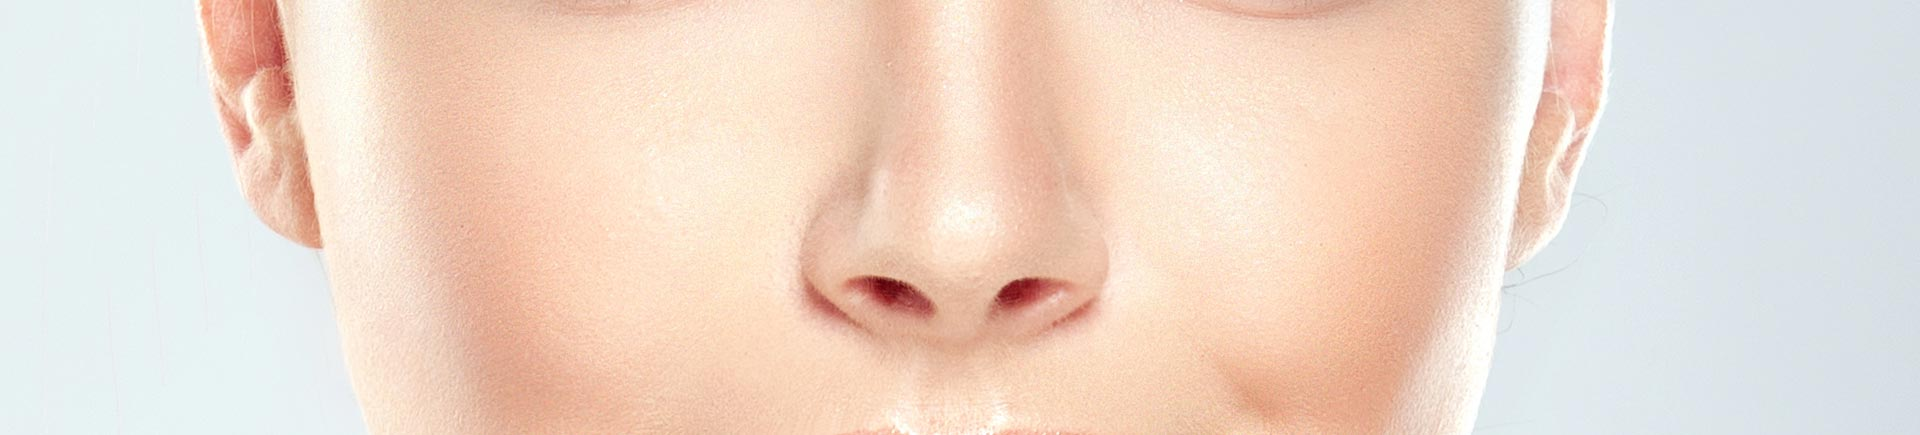 Nose of a beautiful model